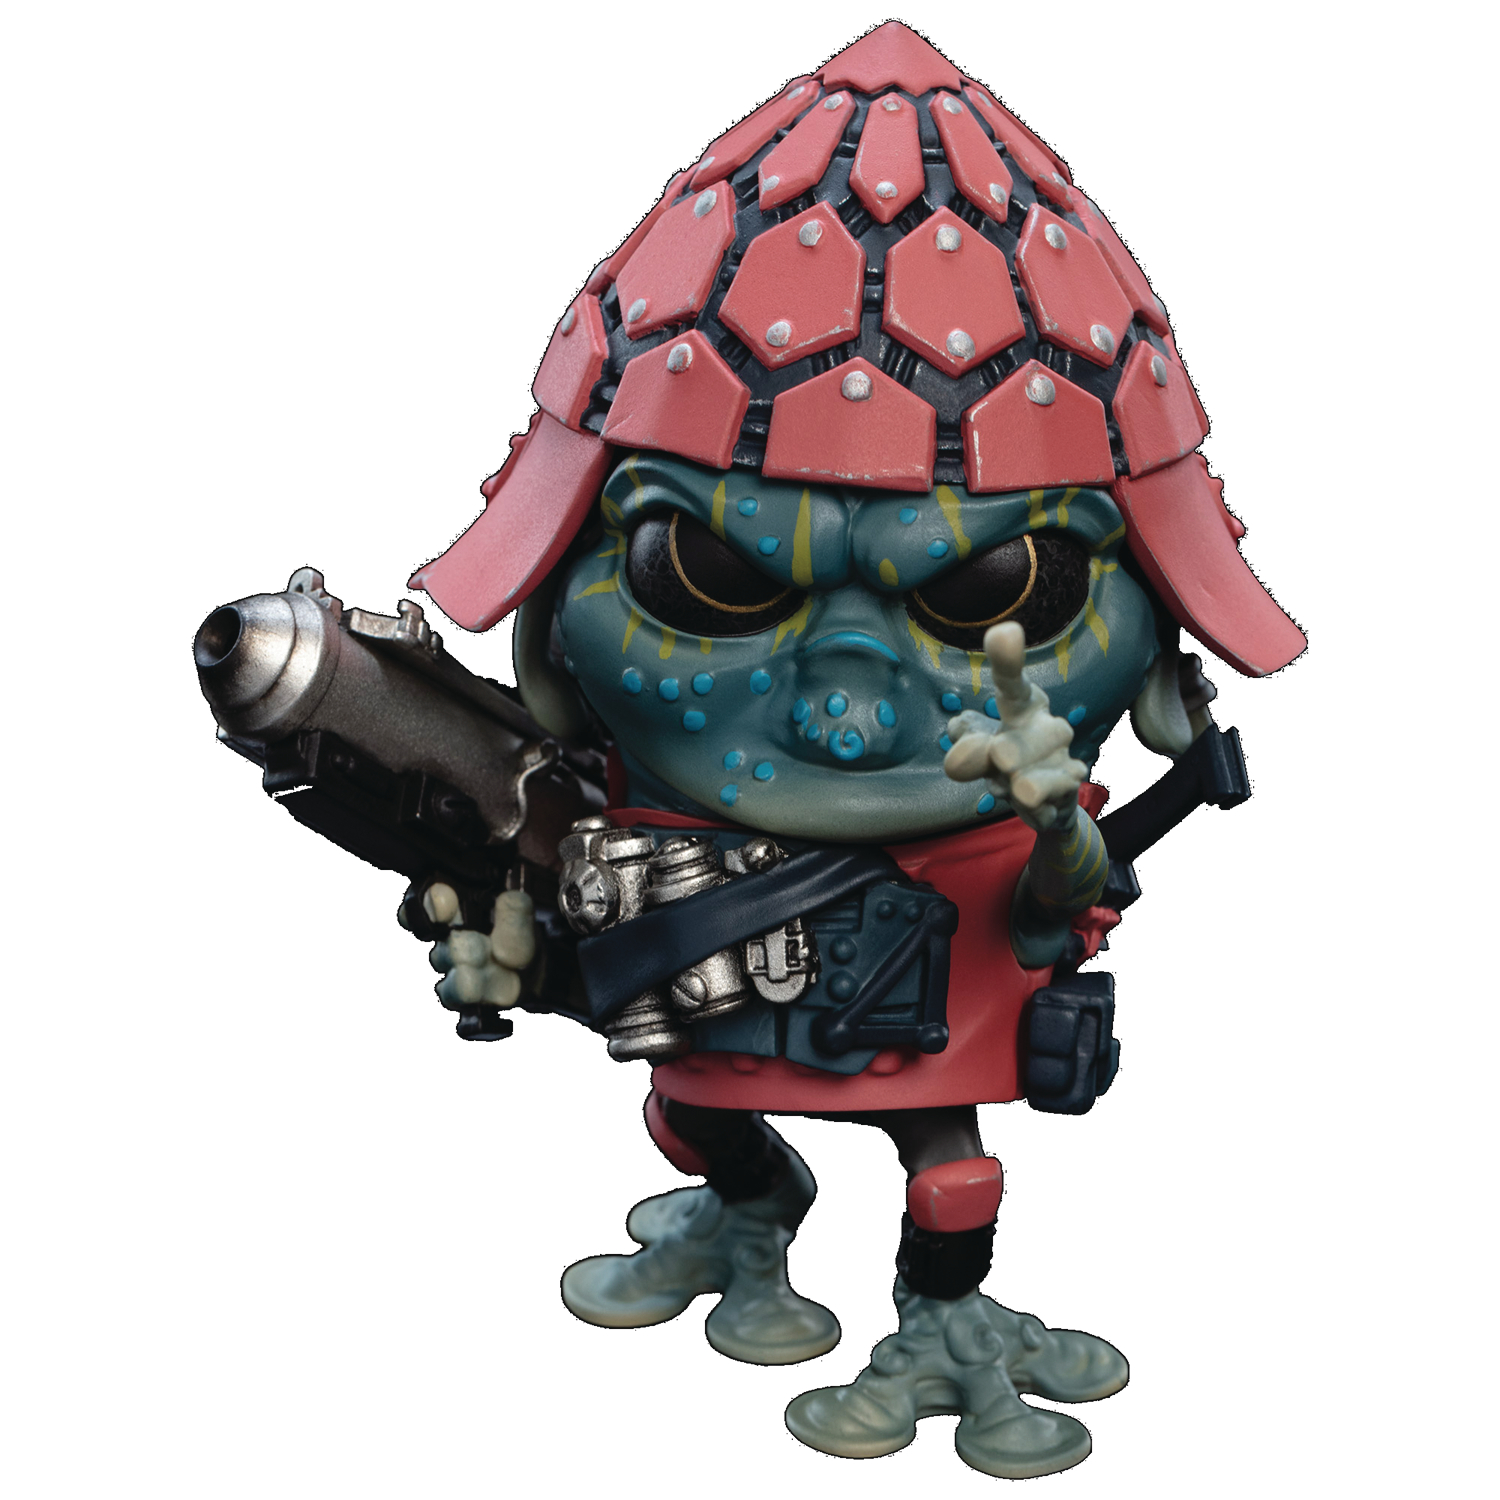 MINI EPICS MIB INTERNATIONAL PAWNY VINYL FIG